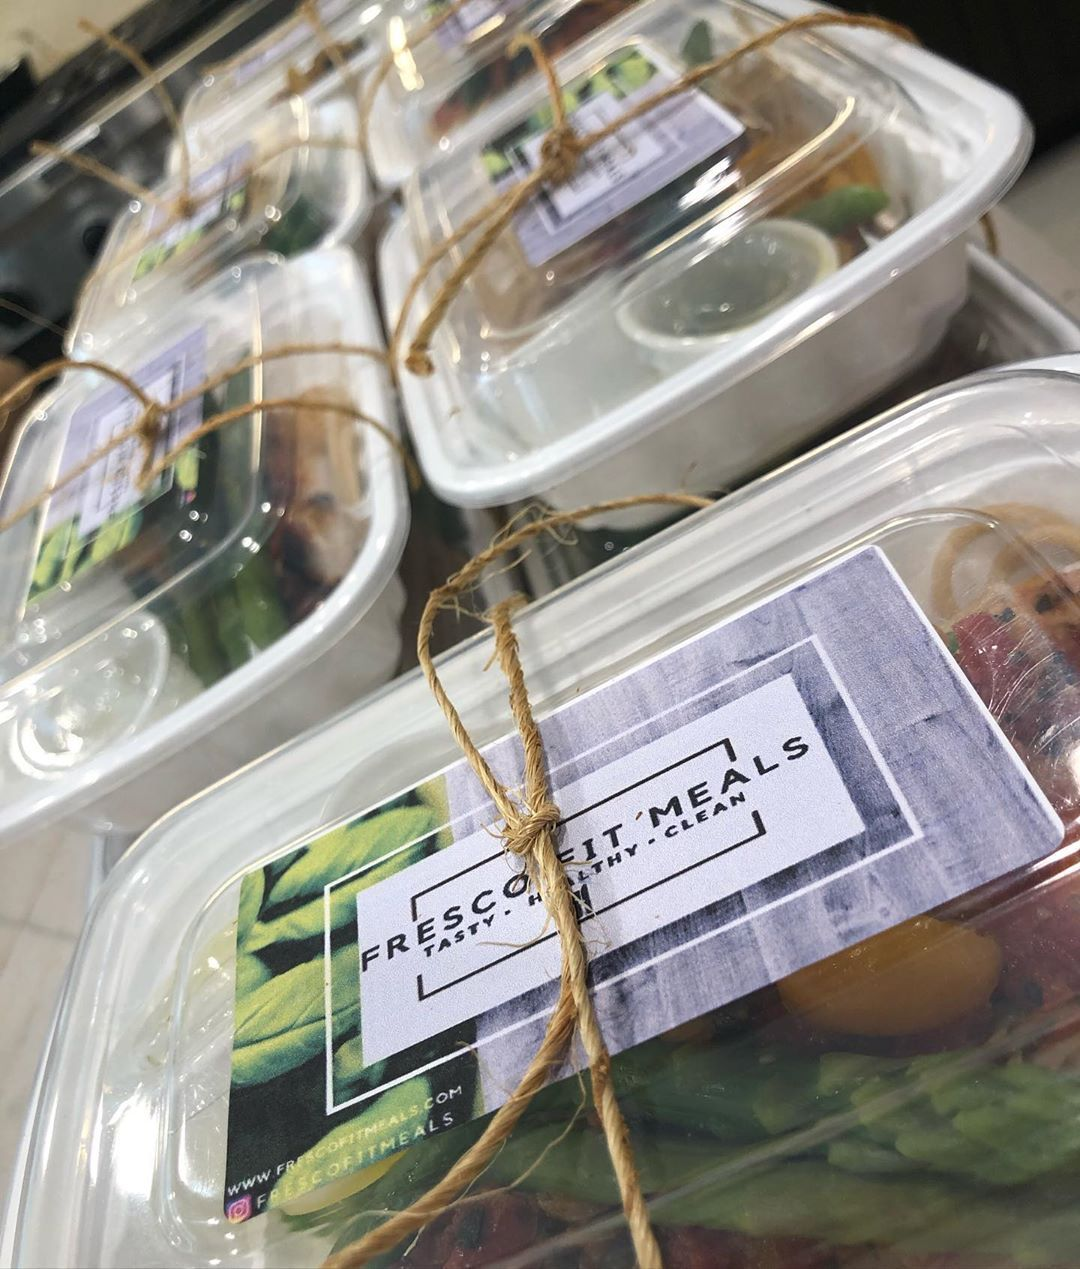 F R E S C O Fit Meals ready for delivery!  Order yours today! 📧 info@frescofitmeals.com — — — — — — — — — — — — #mealdelivery #miamiliving #mealservice #miami #pinecrest #southmiami #coralgables #westchester #southflorida #macrofriendly #healthymeals #summerscoming #miamidade #frescofitmeals #cleaneating #freshflavors #health #mealplan #deliveryservice #lifestyle #lowcal #maintenance #lean #miamifitness #clean #stressfree #freshingredients #miamieats #miamimealdelivery #miamifit